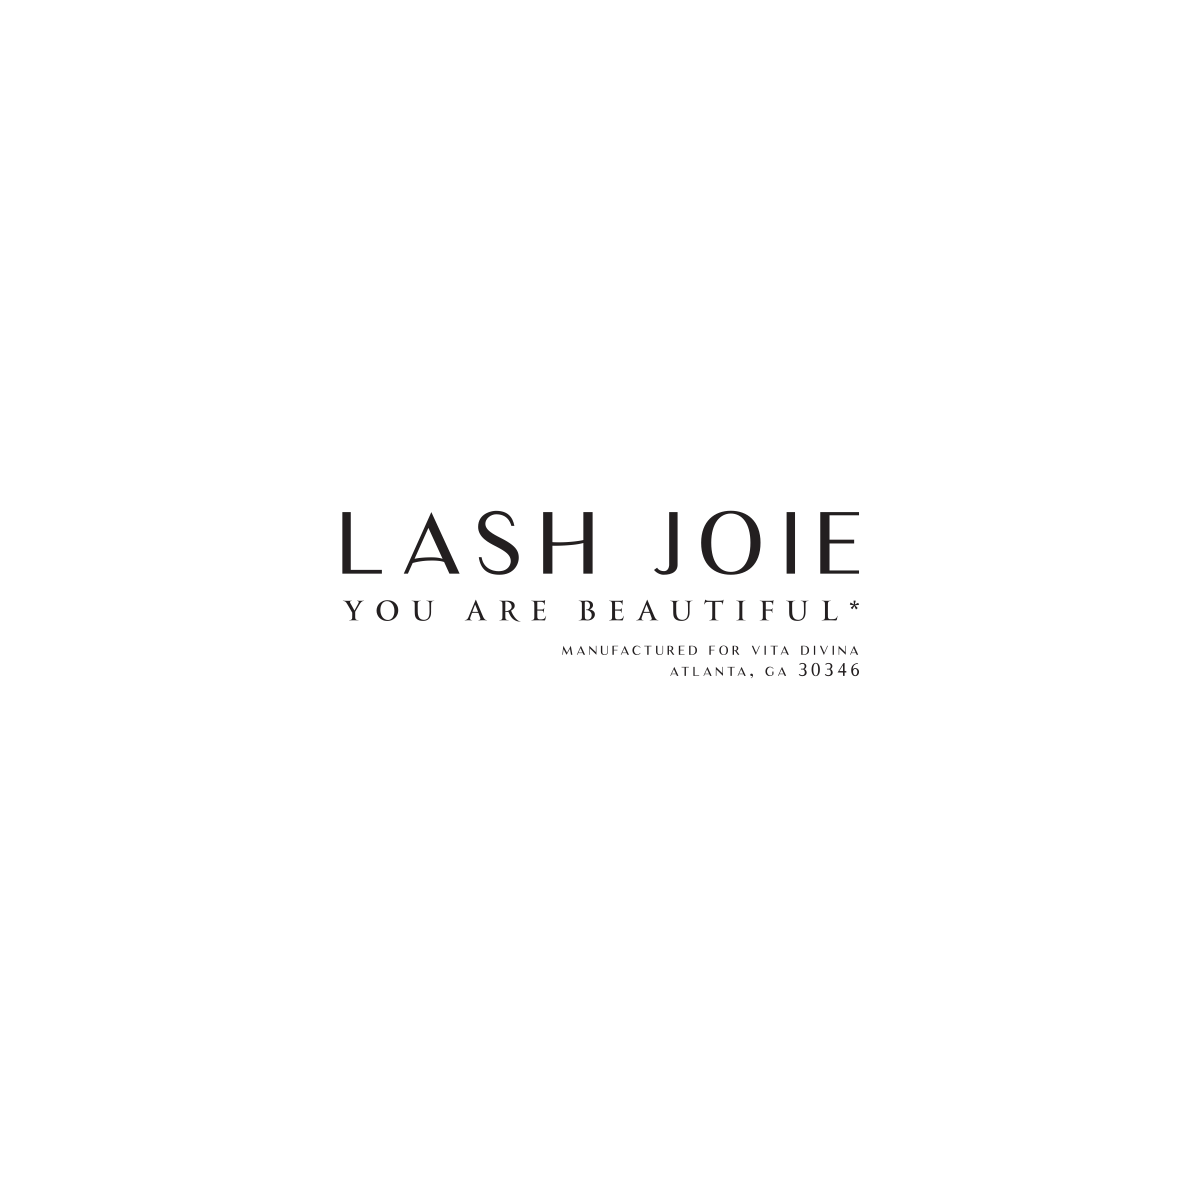 Update to current logo needed (Lash Joie)